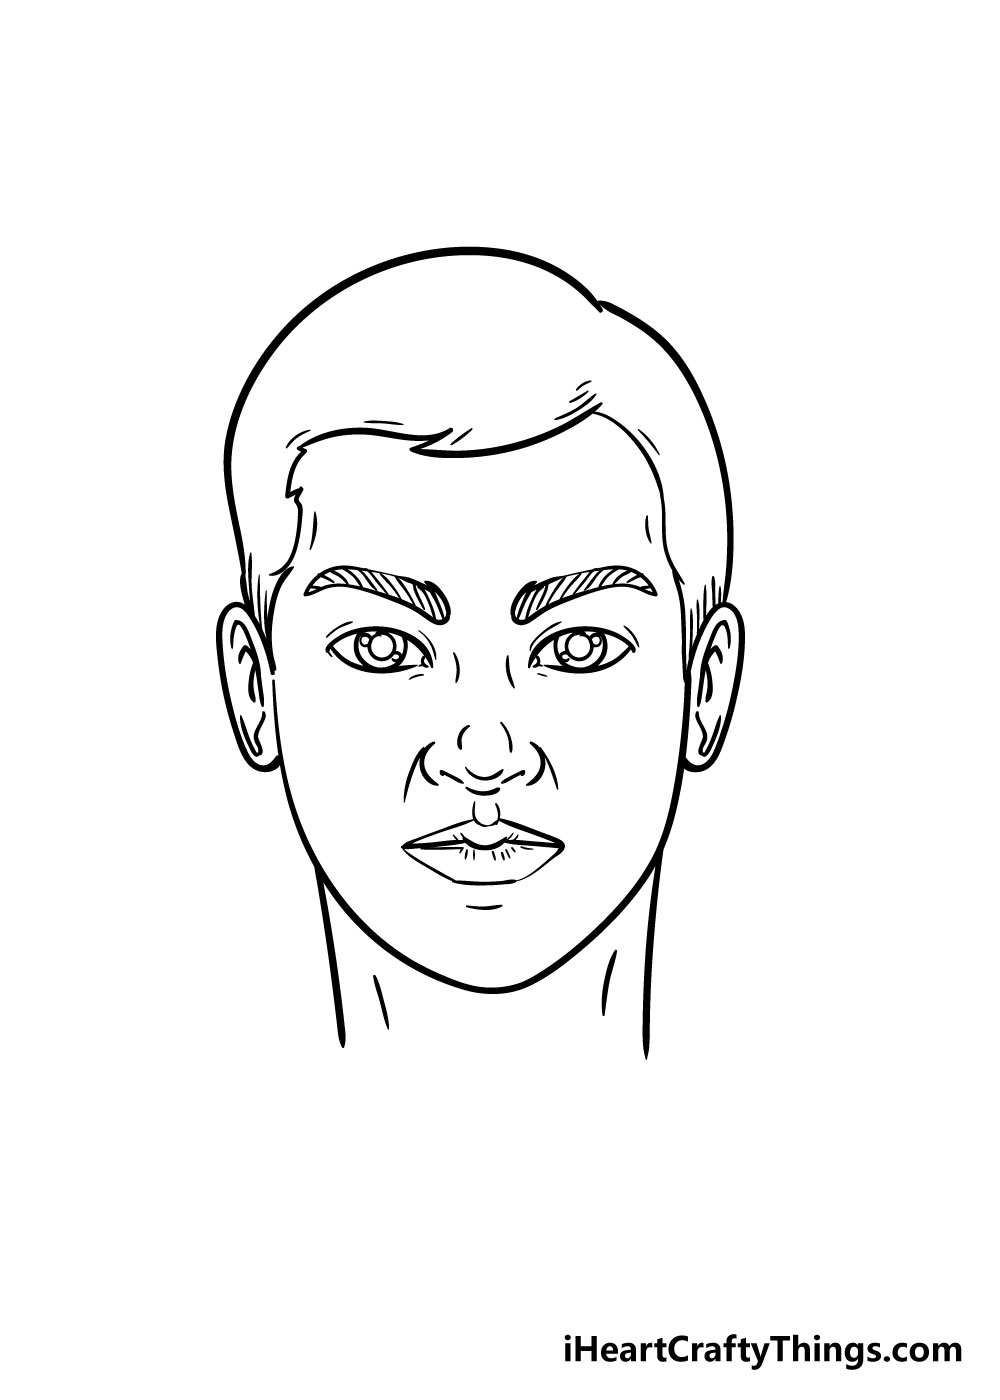 face drawing step 5